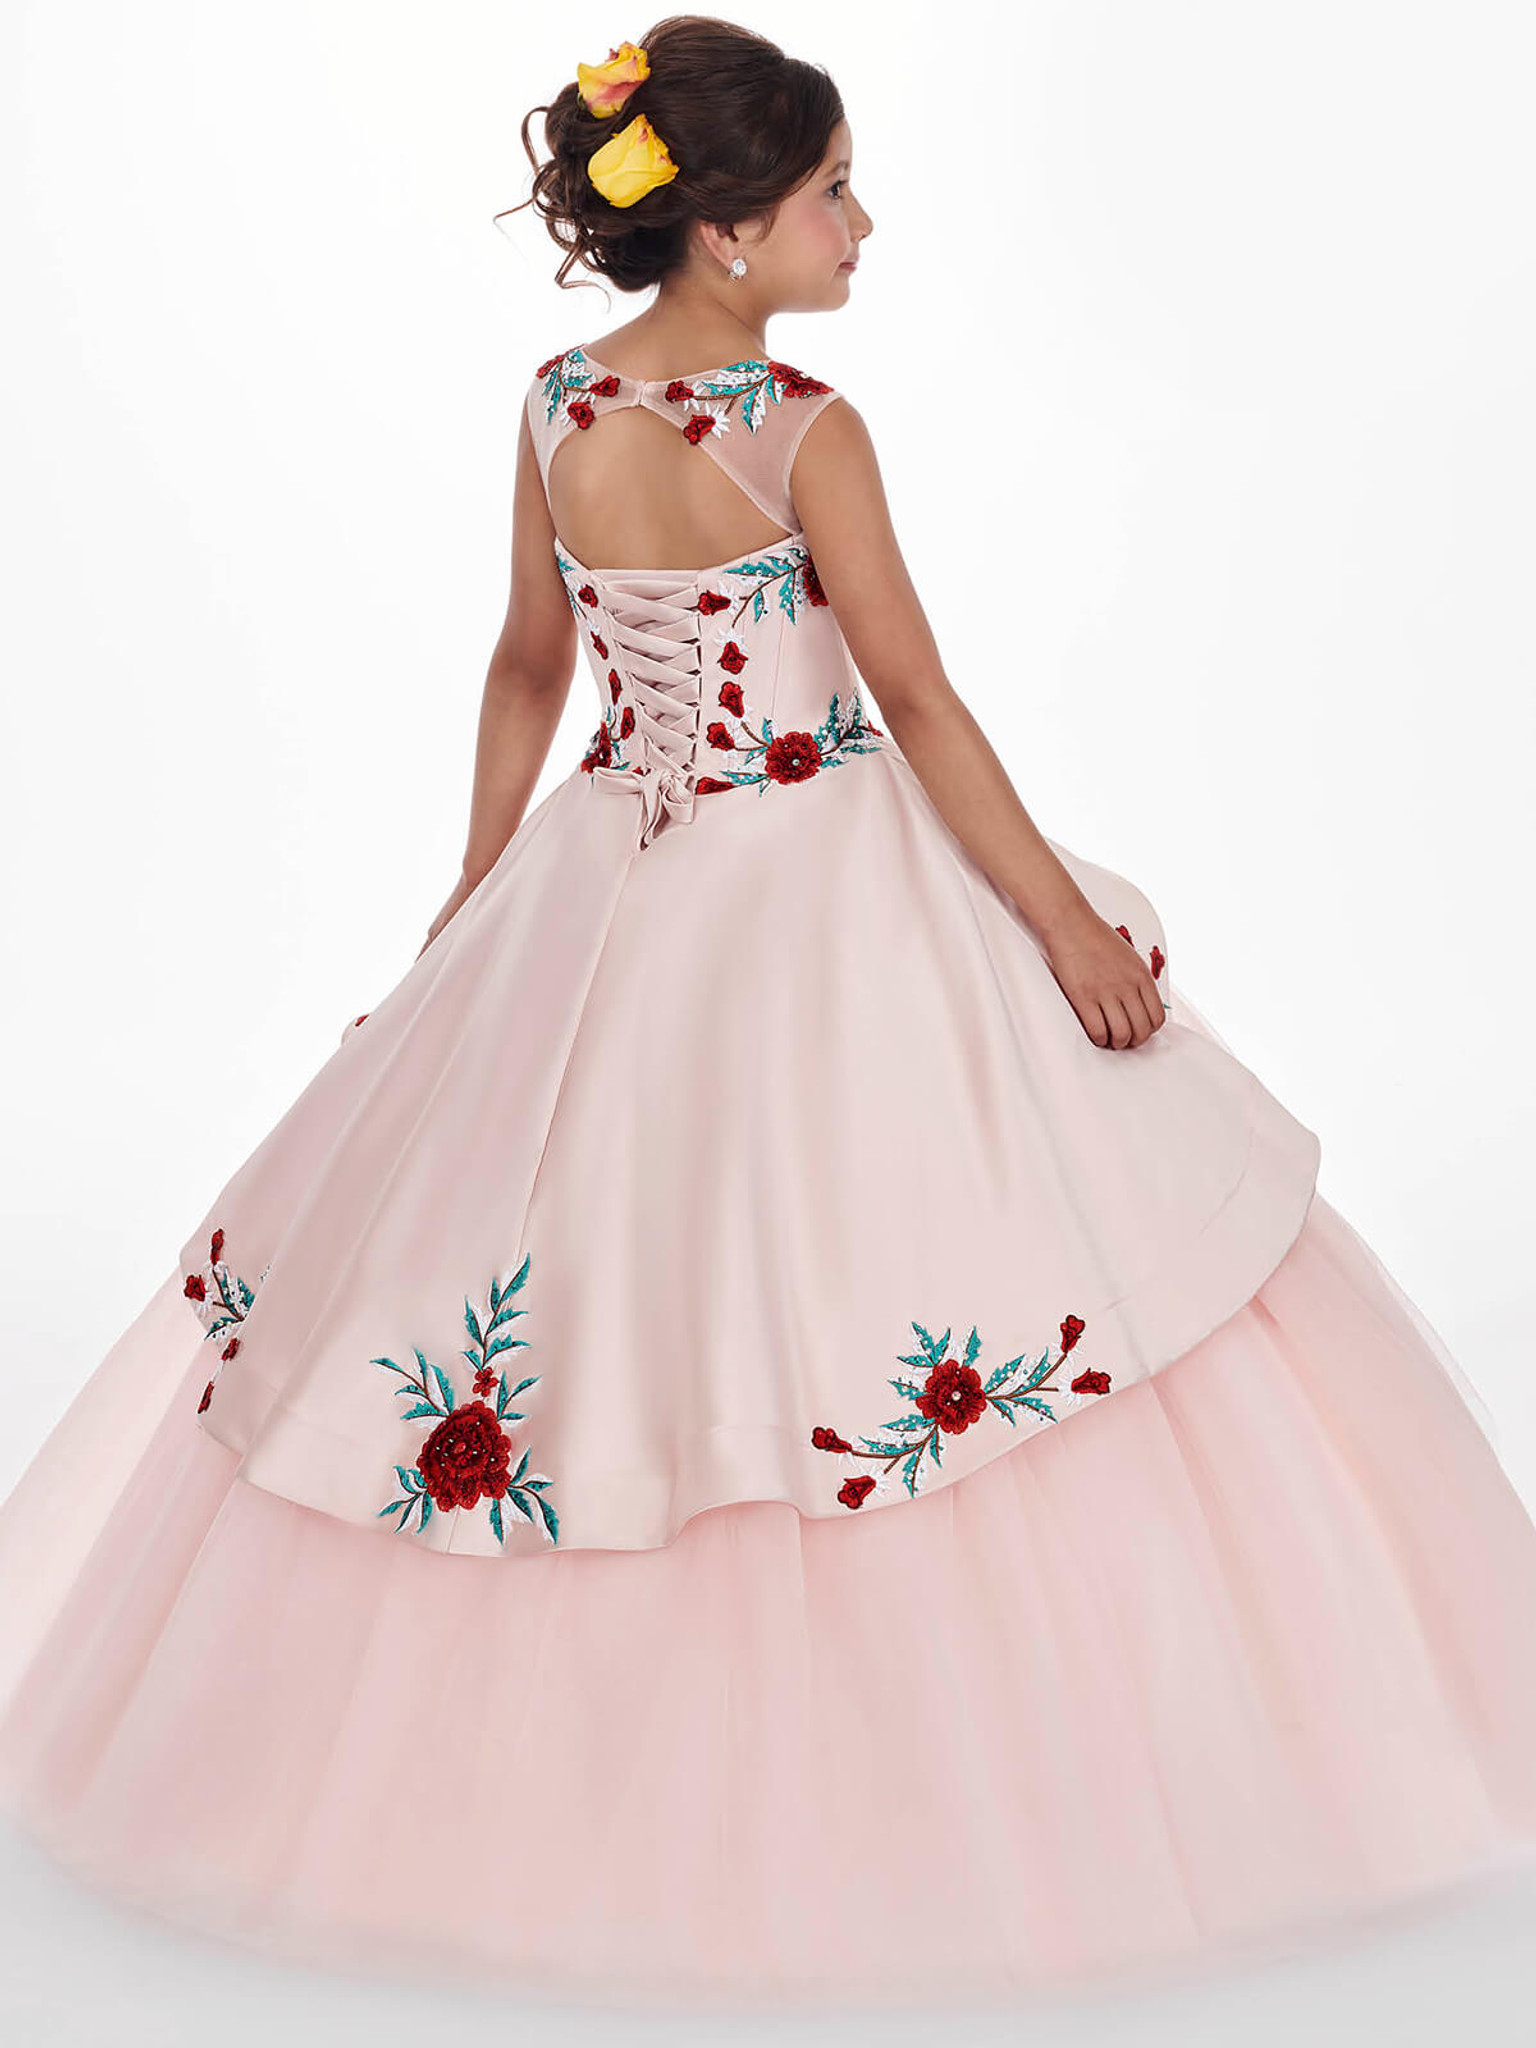 blush with red embroidery roses dress for girls marys MQ4009